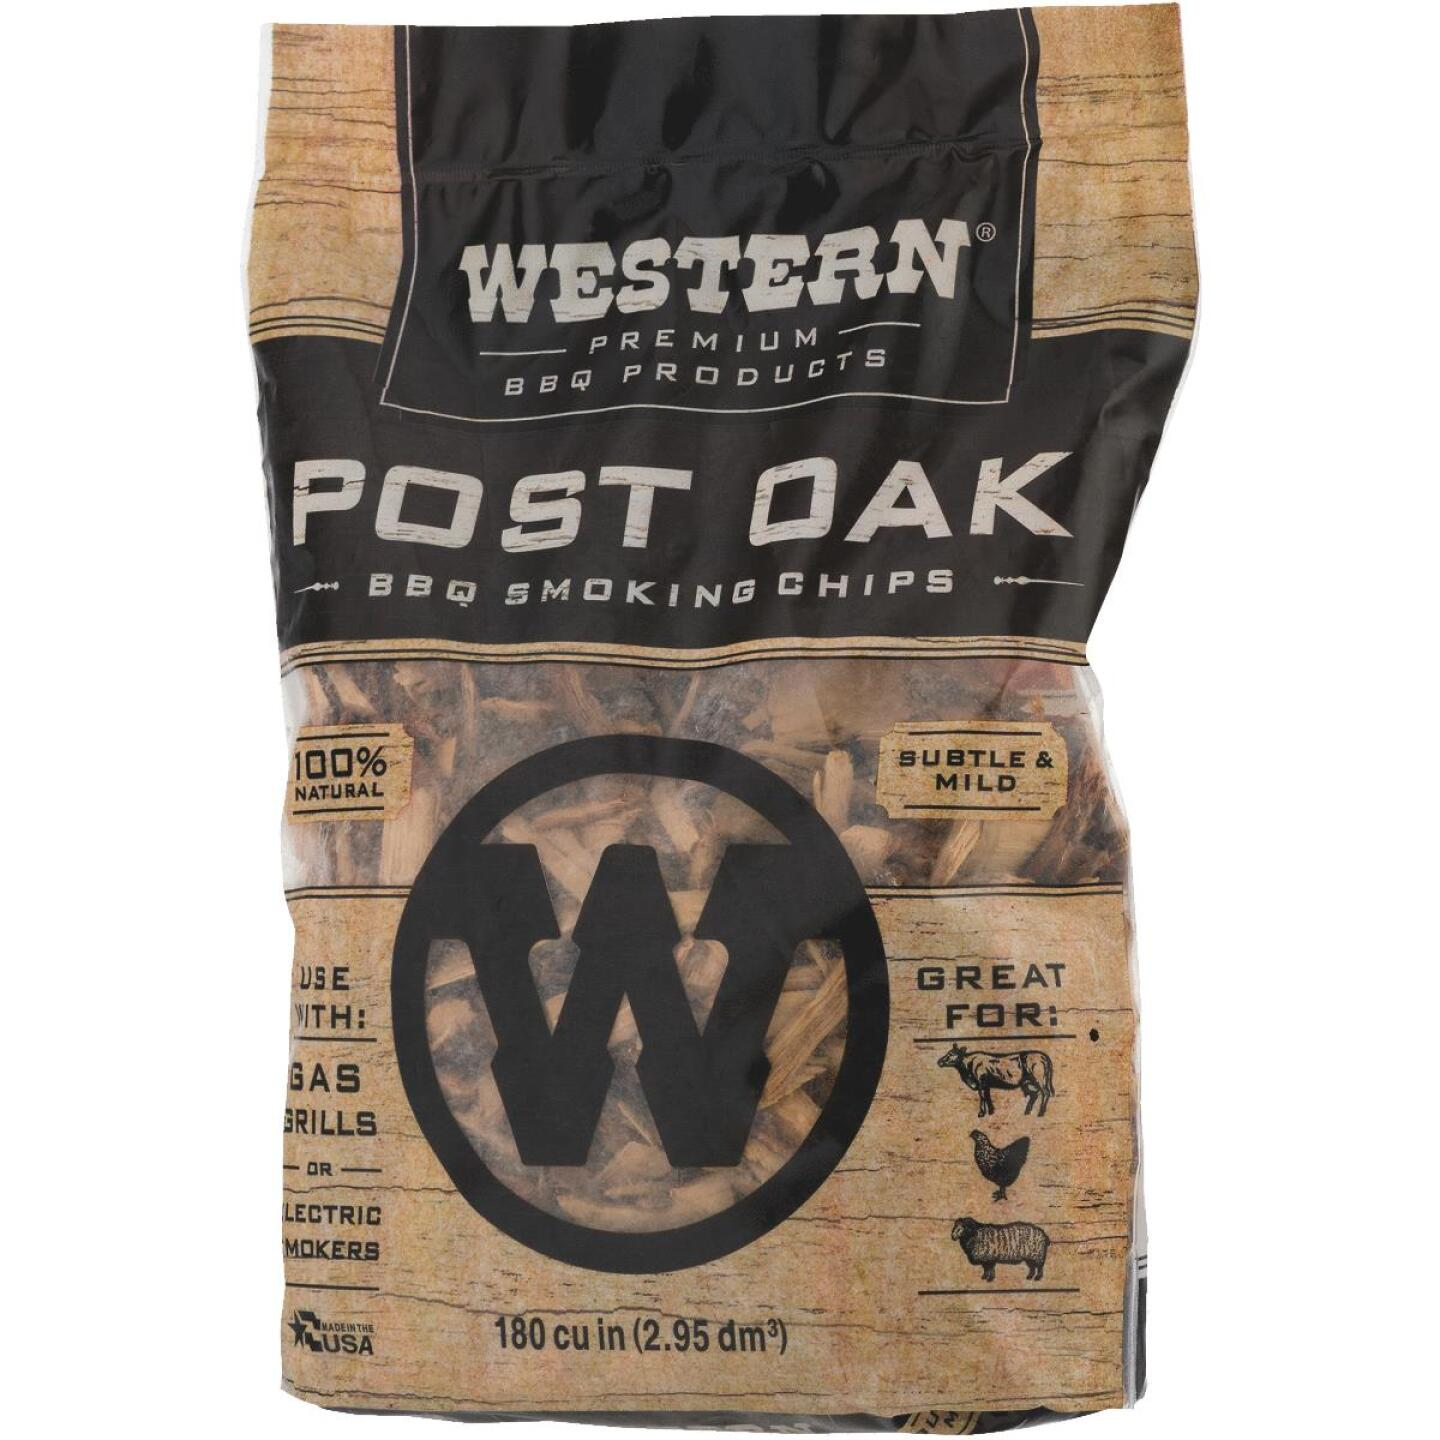 Western 2 Lb. Oak Wood Smoking Chips Image 4